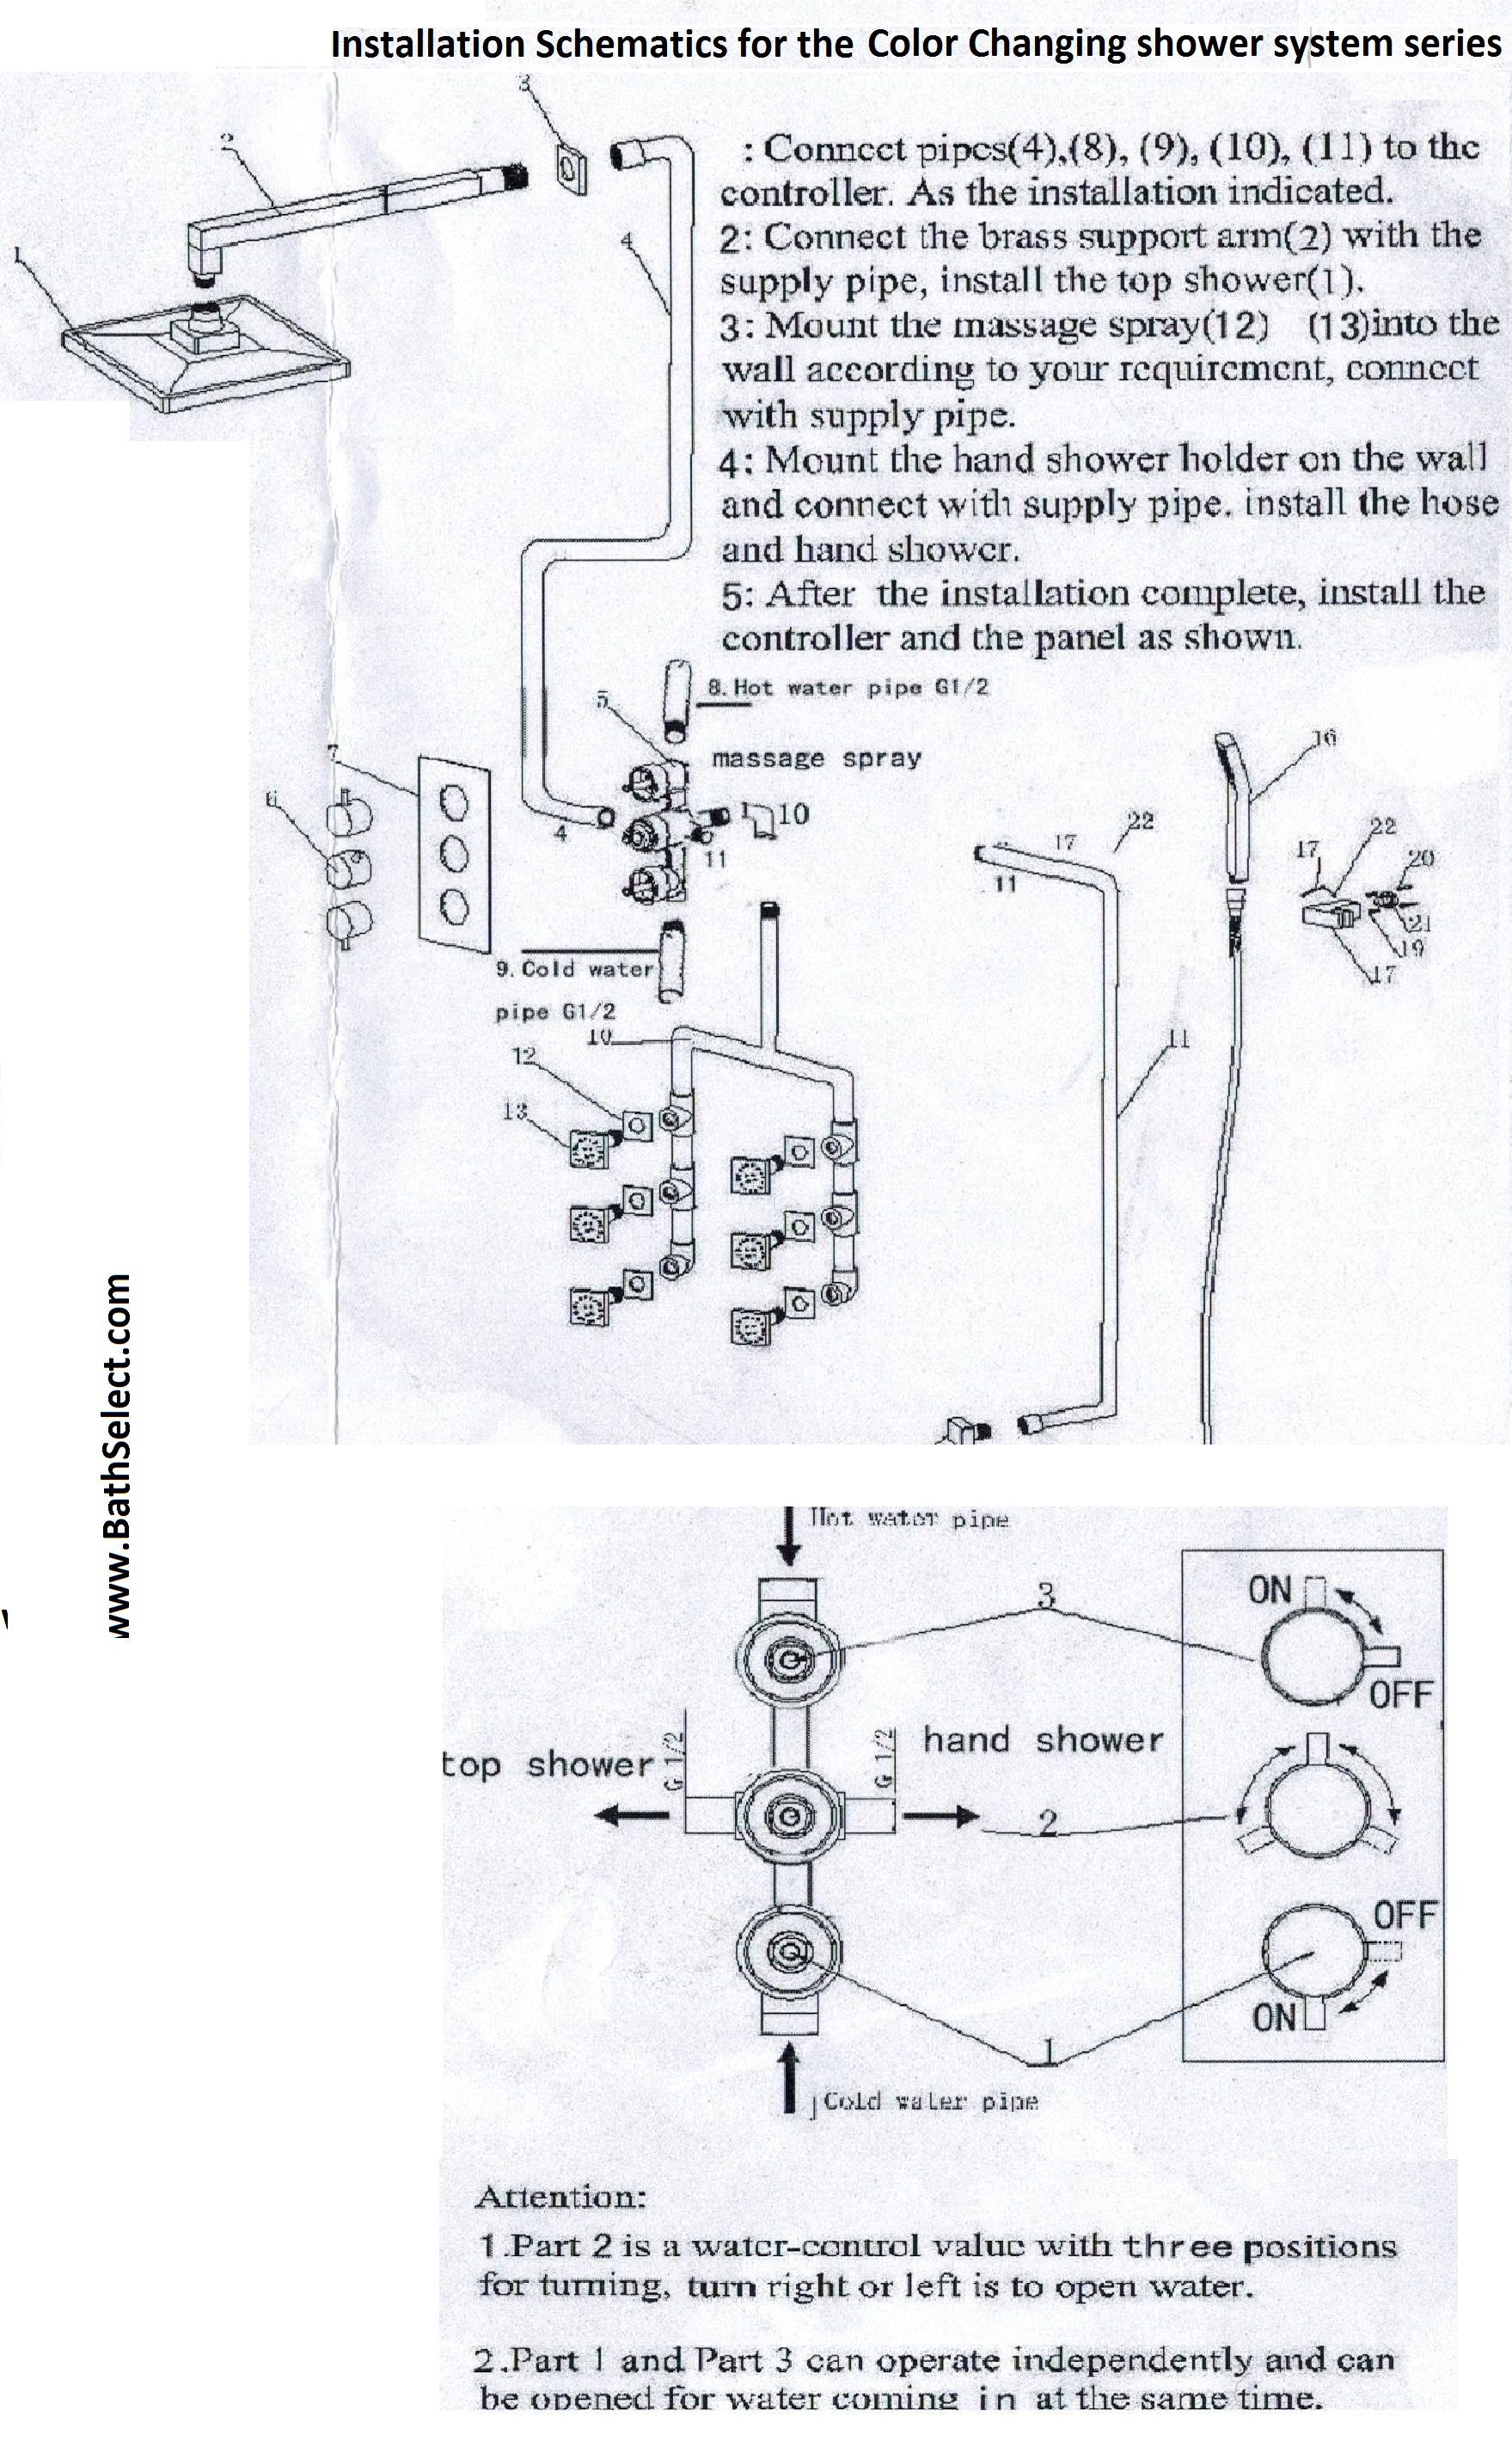 Installations Guide For Temp Sensor Color Changing Shower